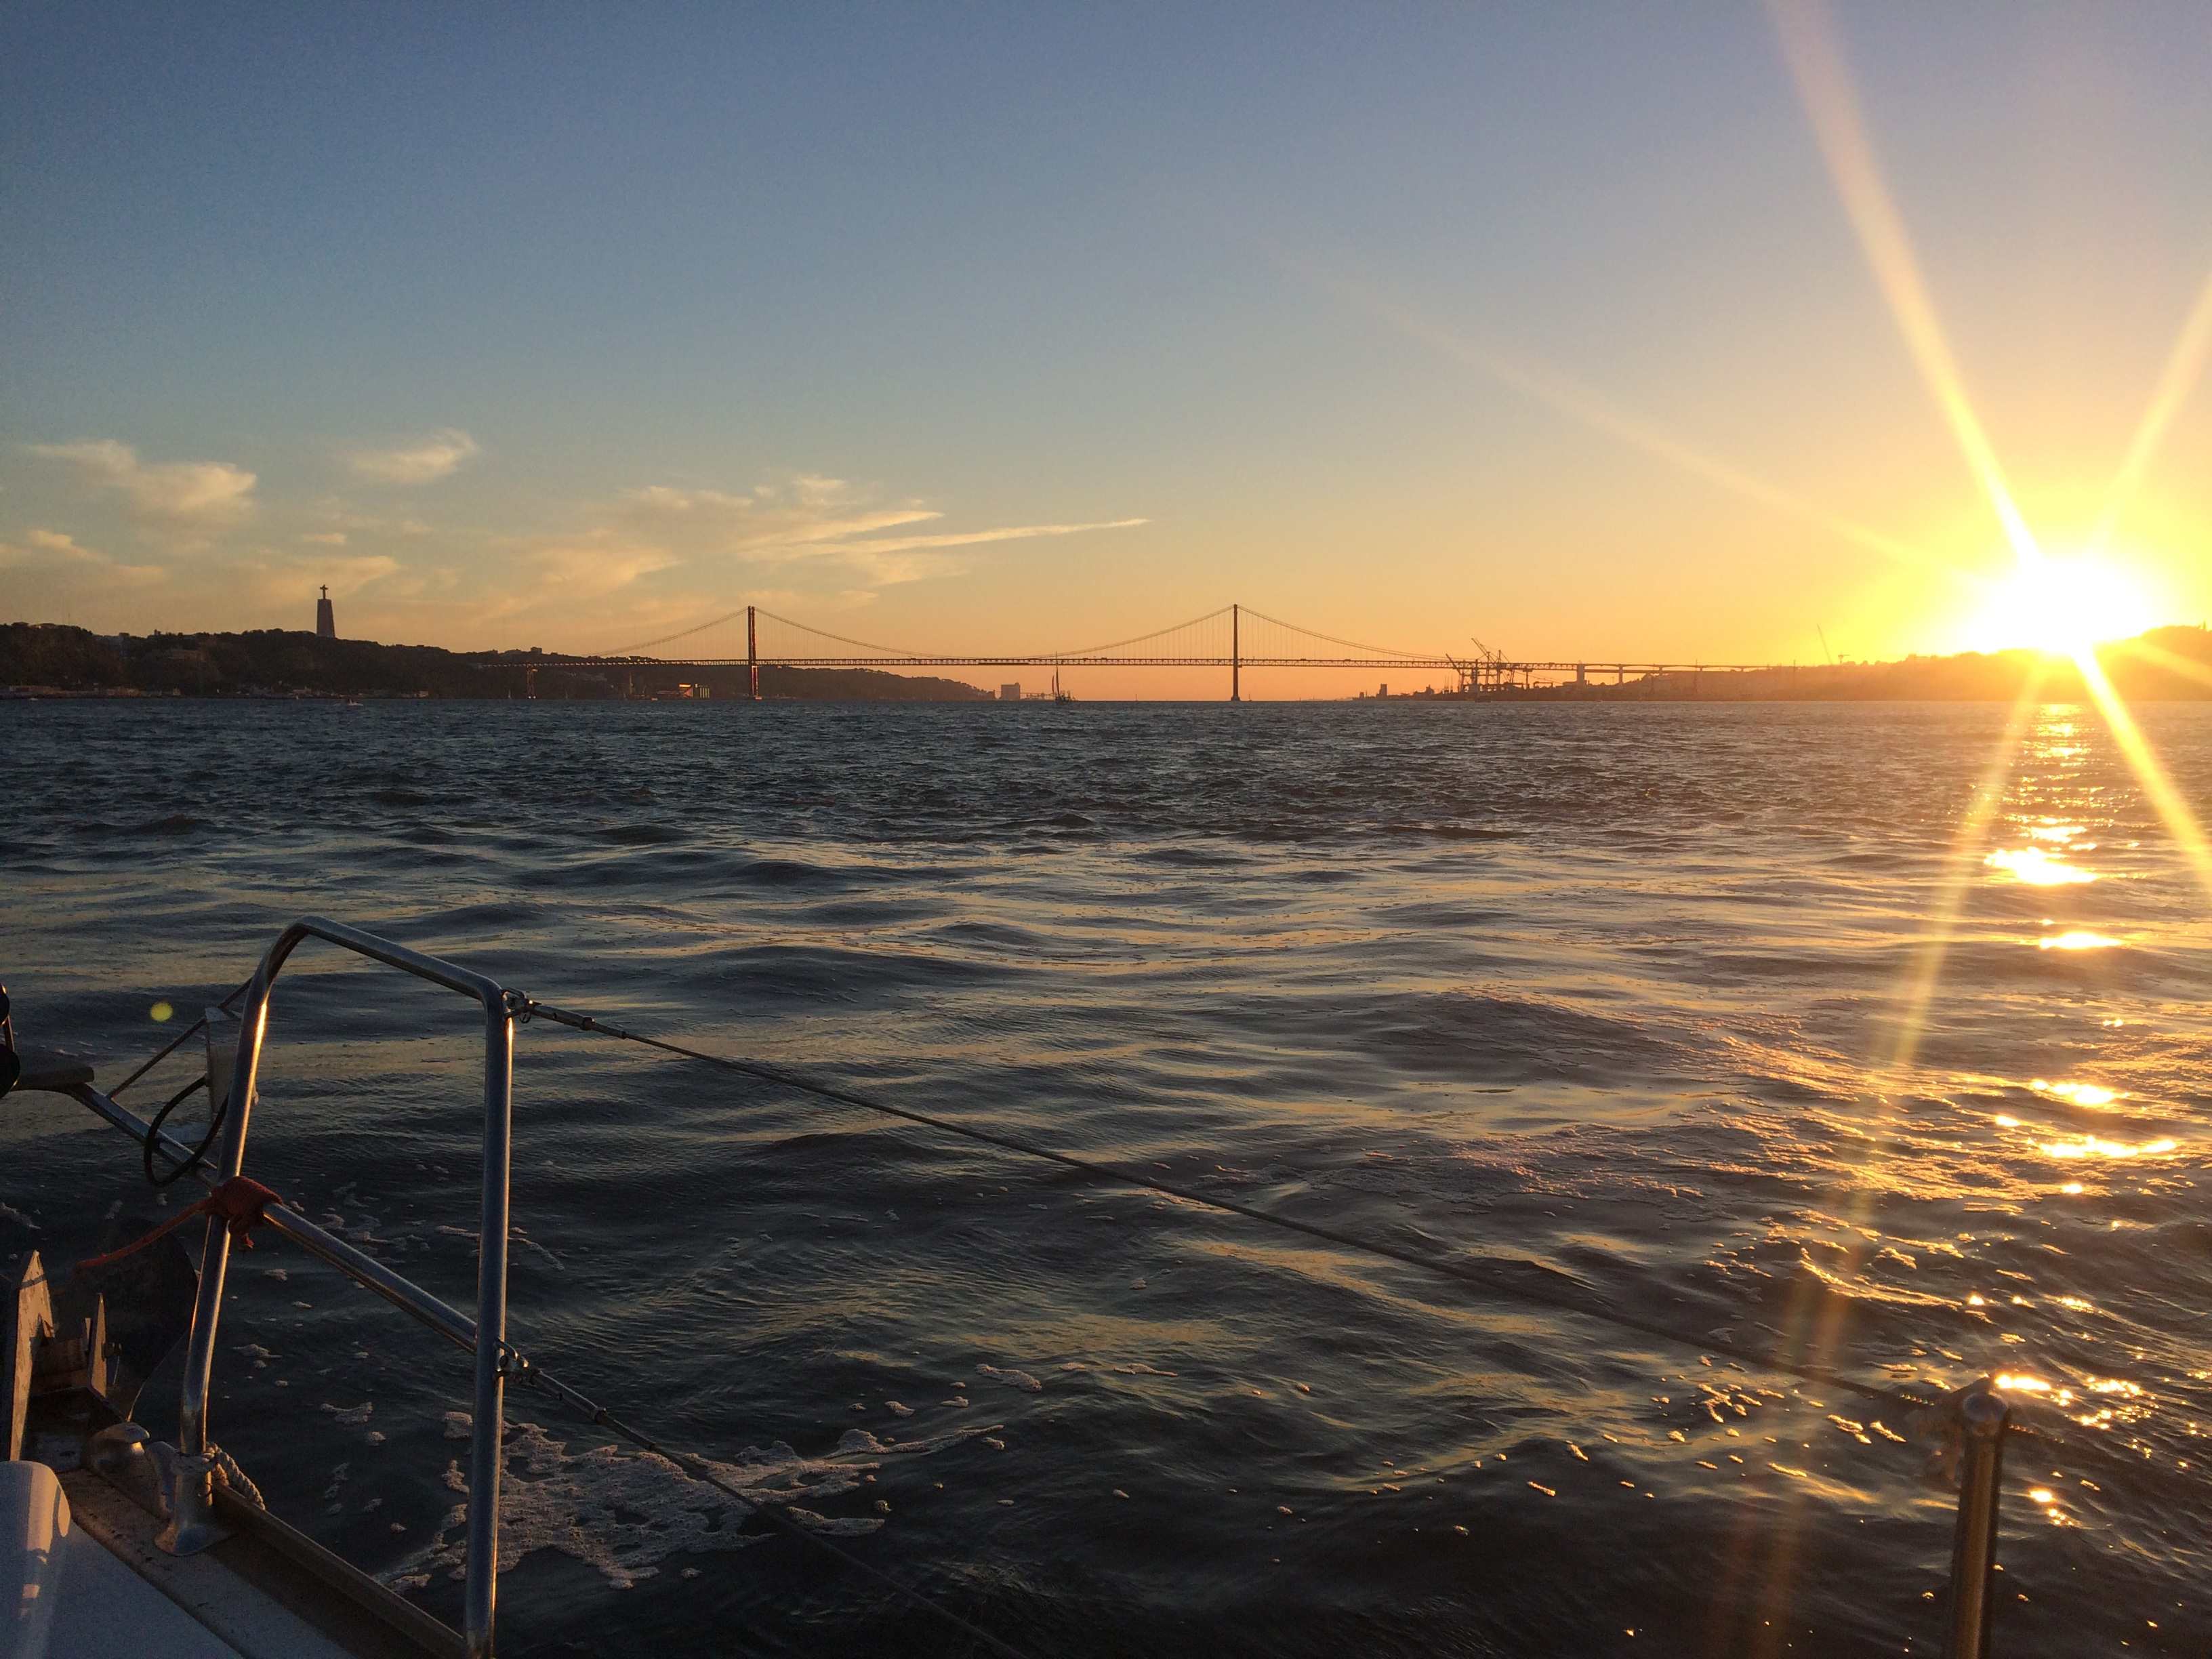 View from a private yacht on Tejo river in Lisbon